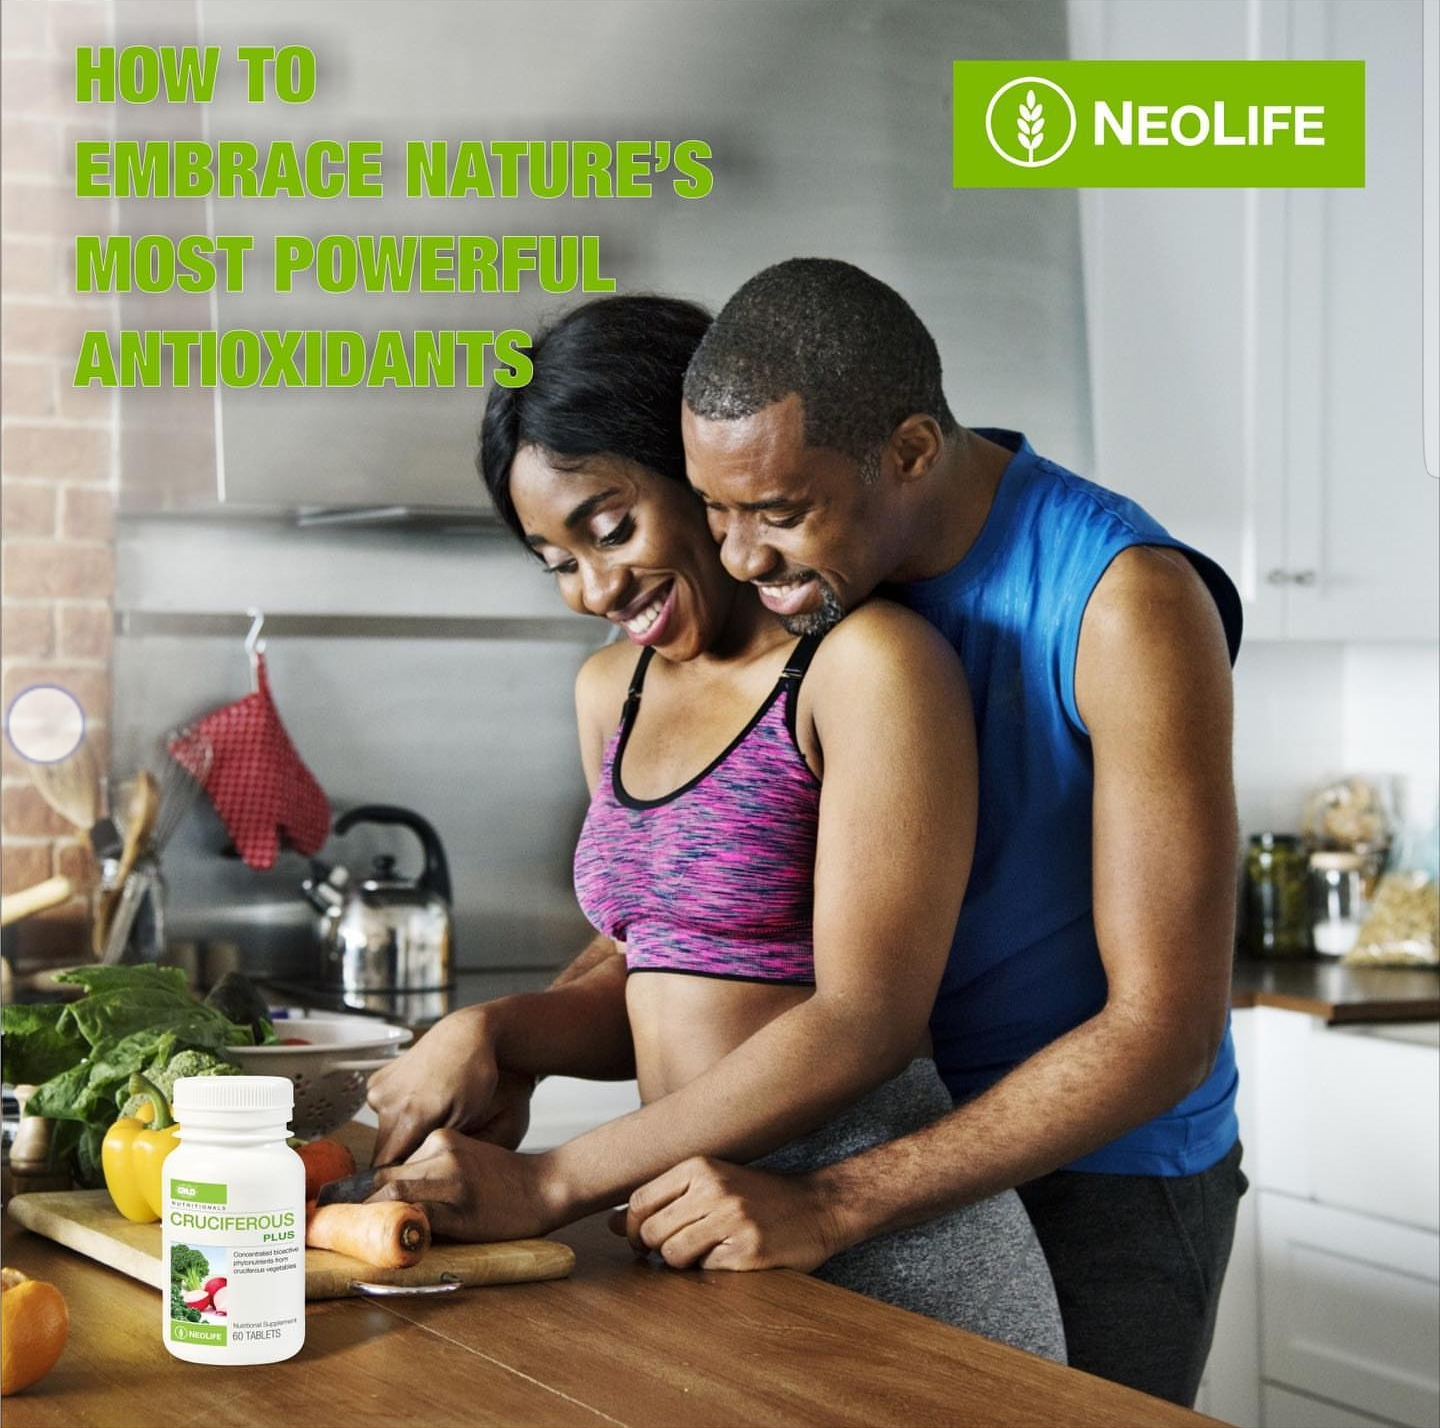 Neolife Nutrition